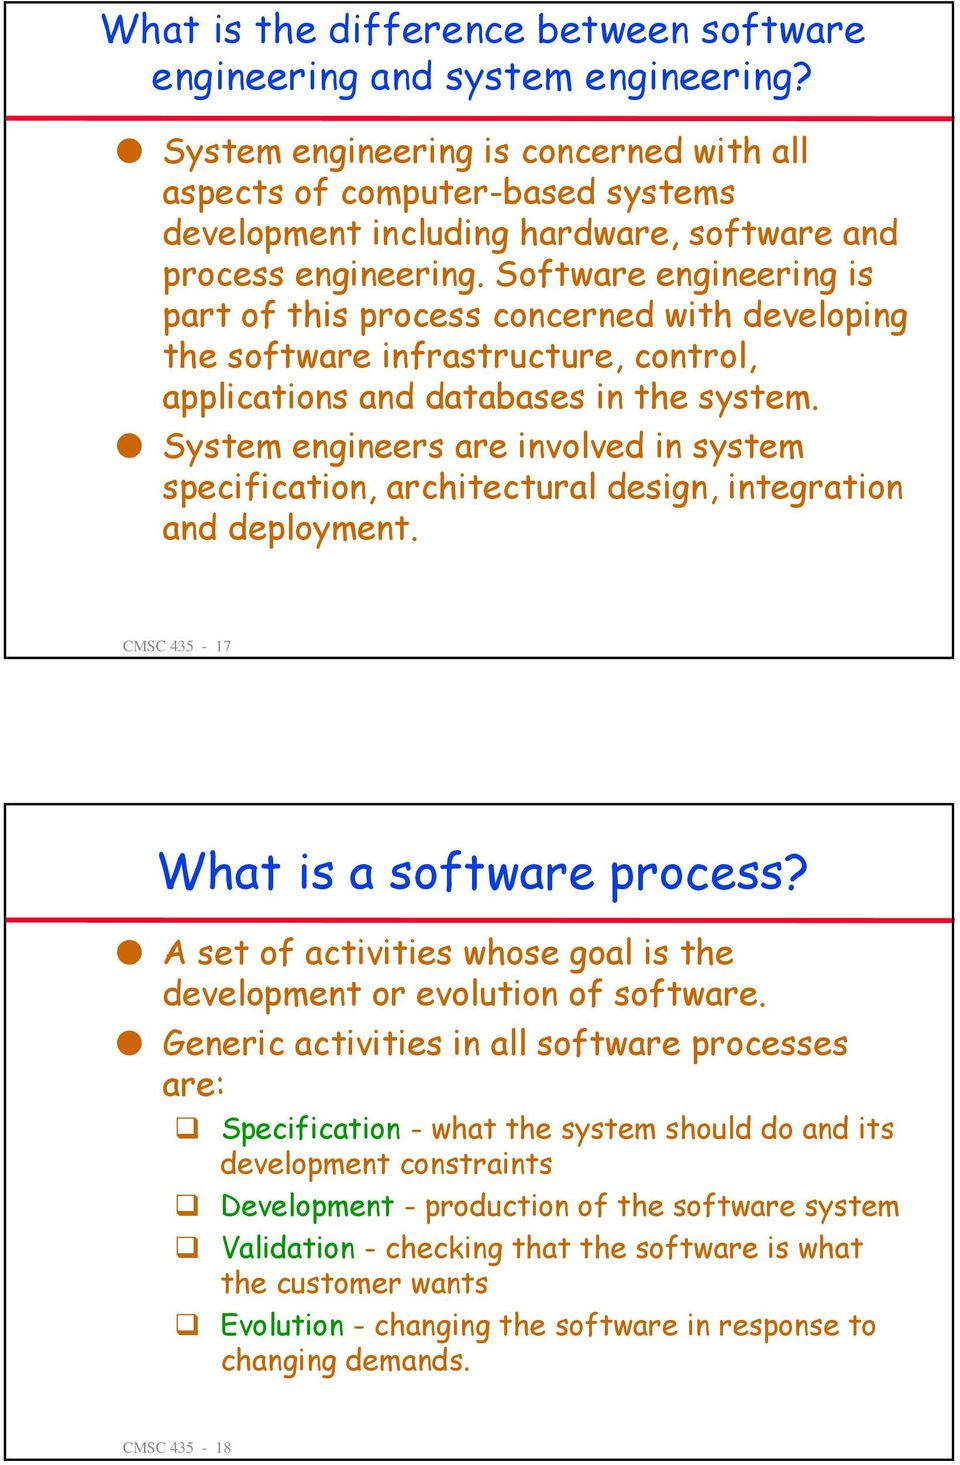 Software engineering is part of this process concerned with developing the software infrastructure, control, applications and databases in the system.